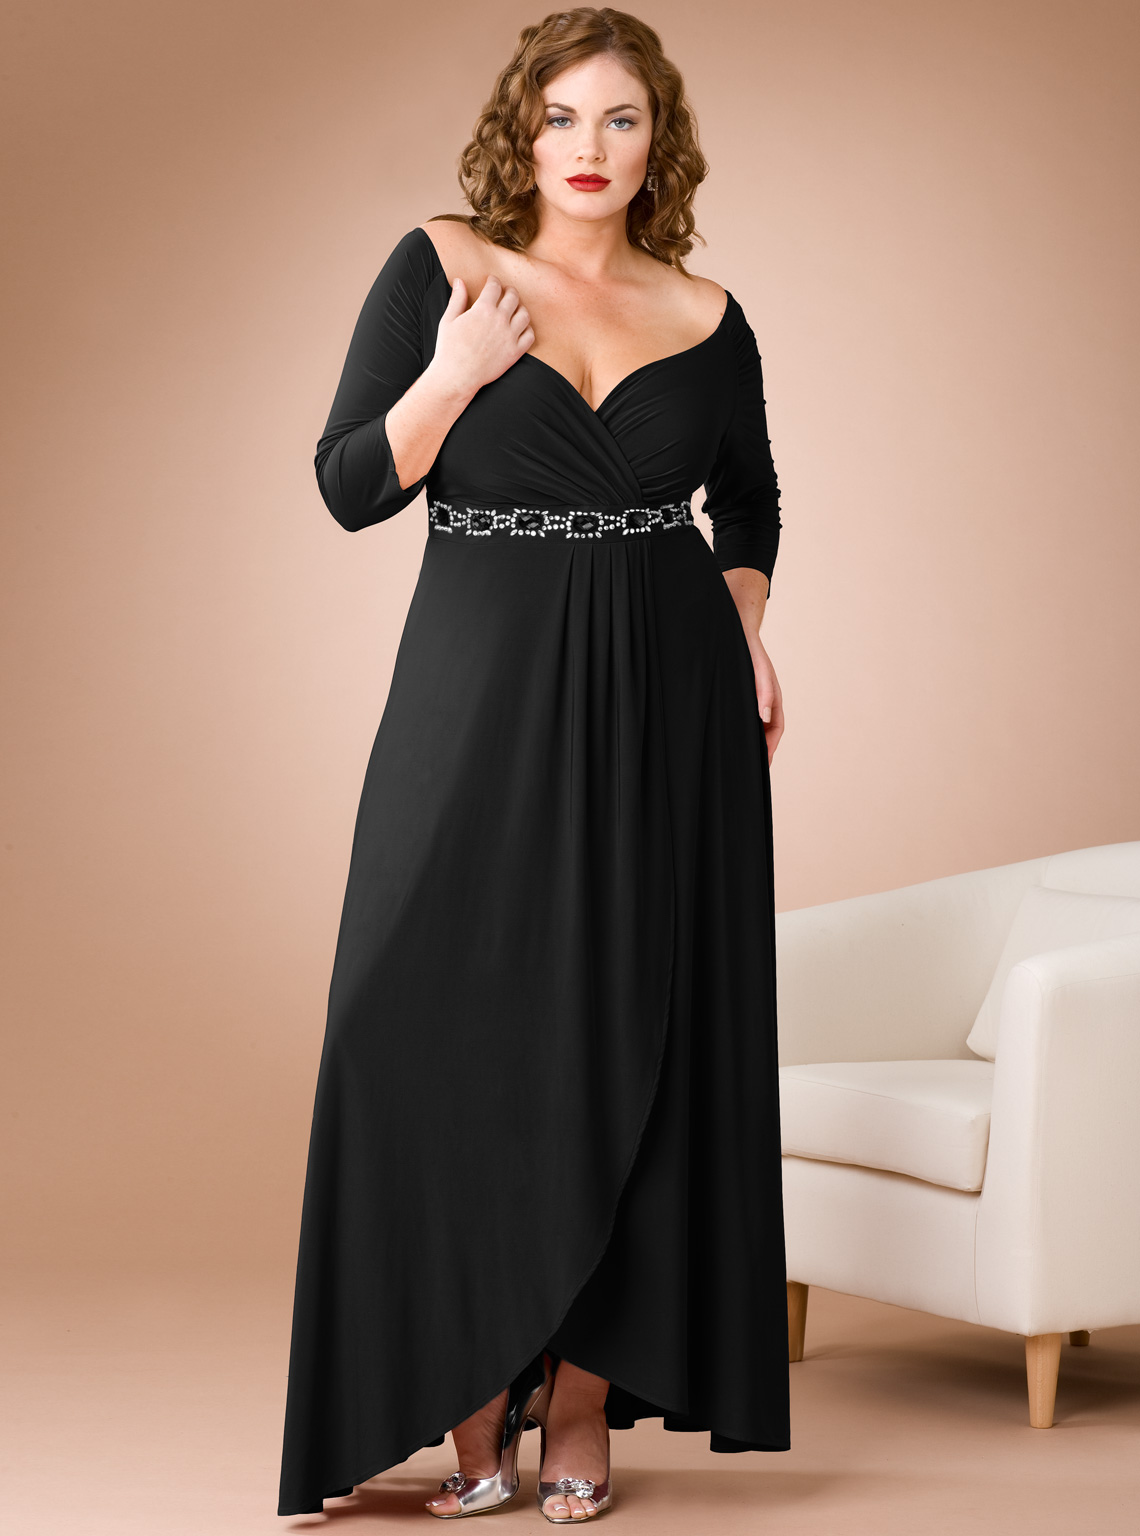 Be Style Icon With Plus Size Designer Clothing: Get Better ...